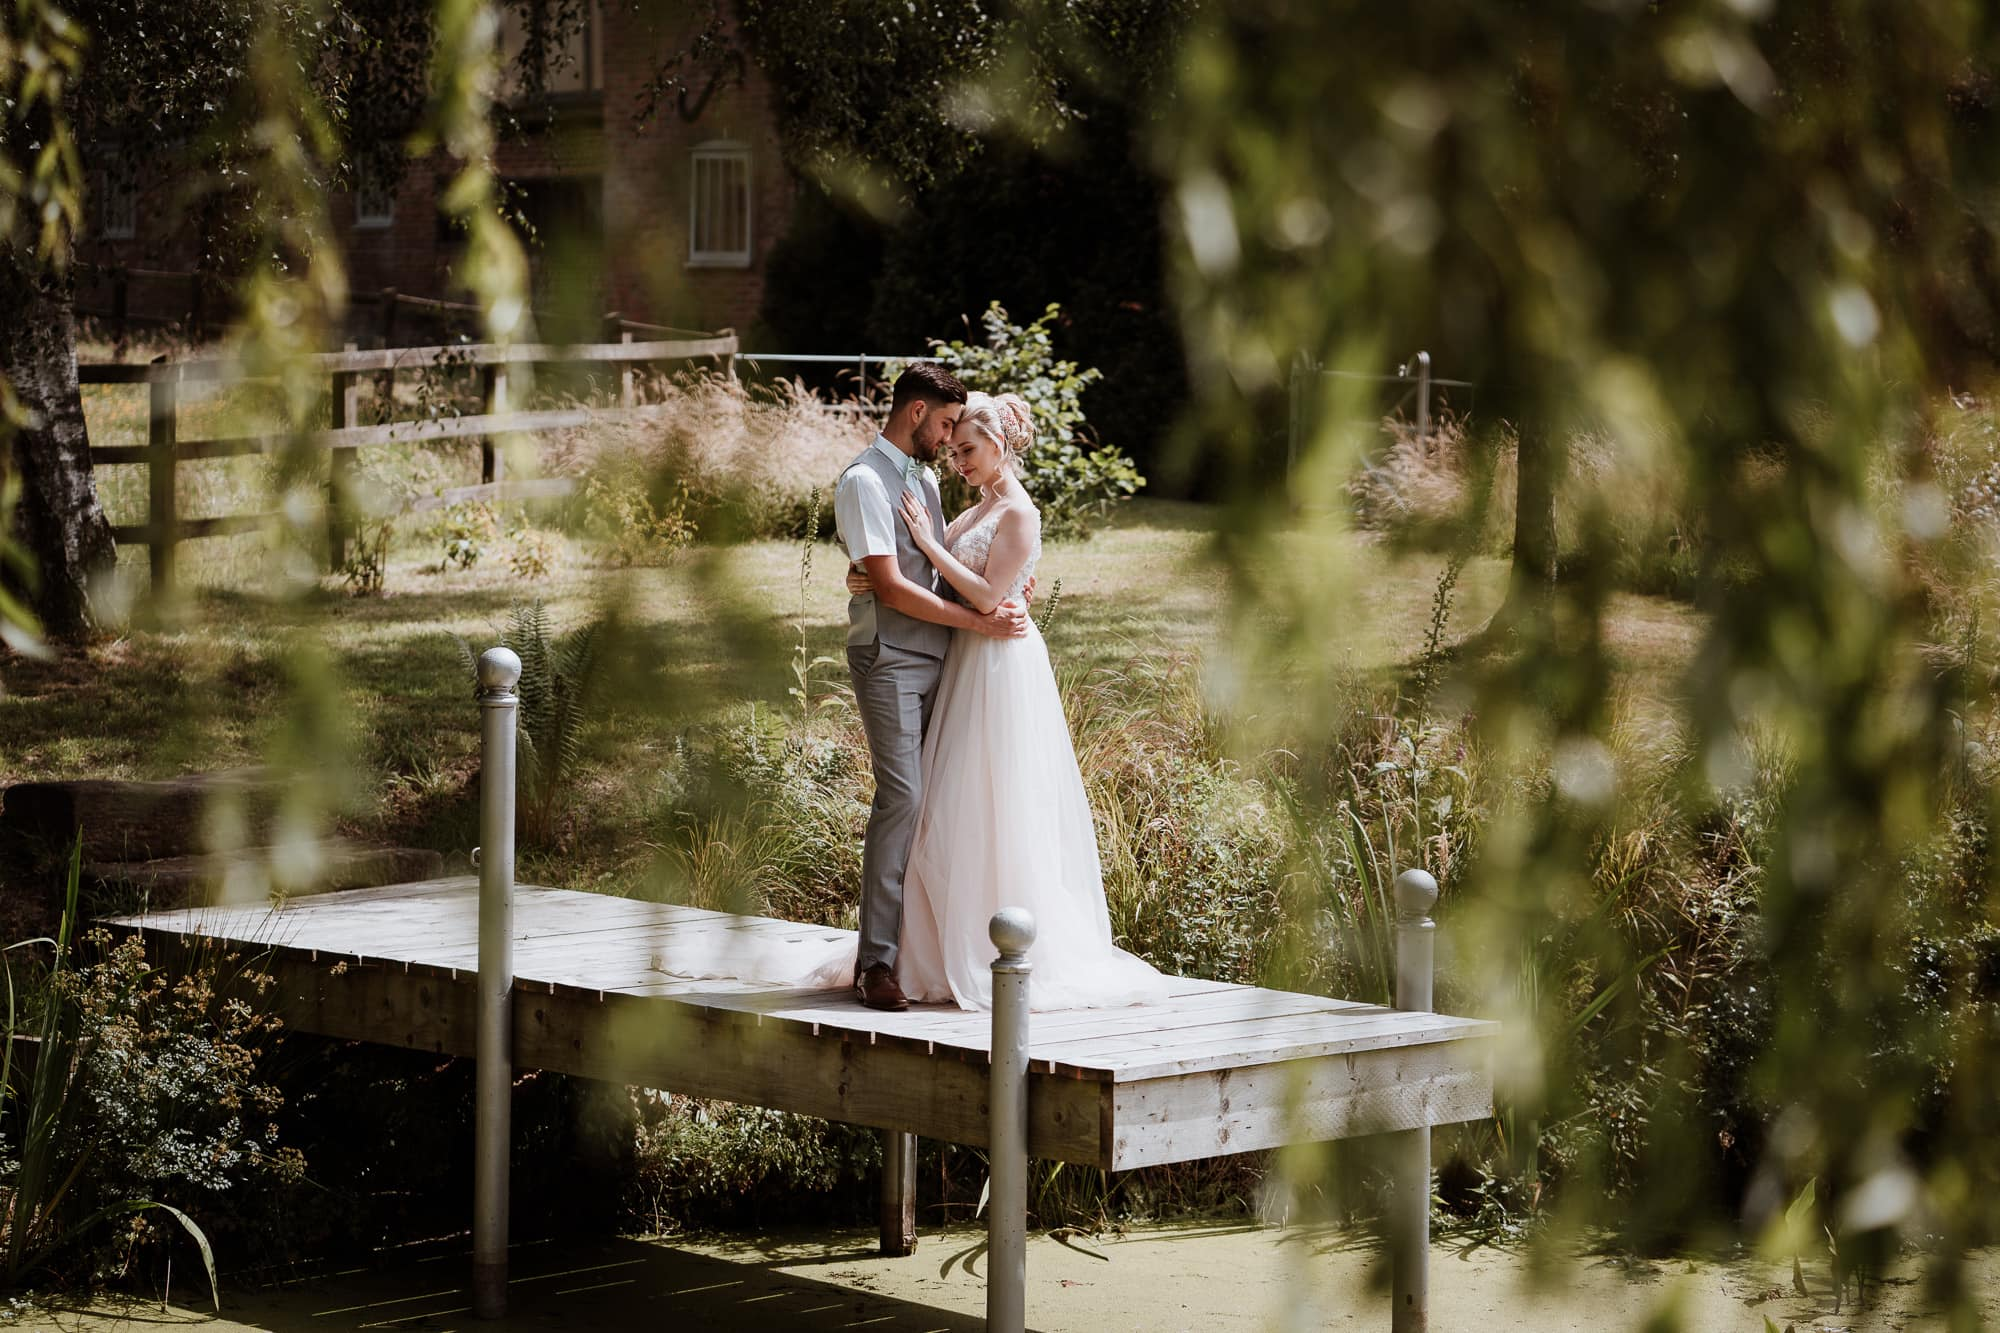 Bride and Groom hugging during portraits on a wooden jetty